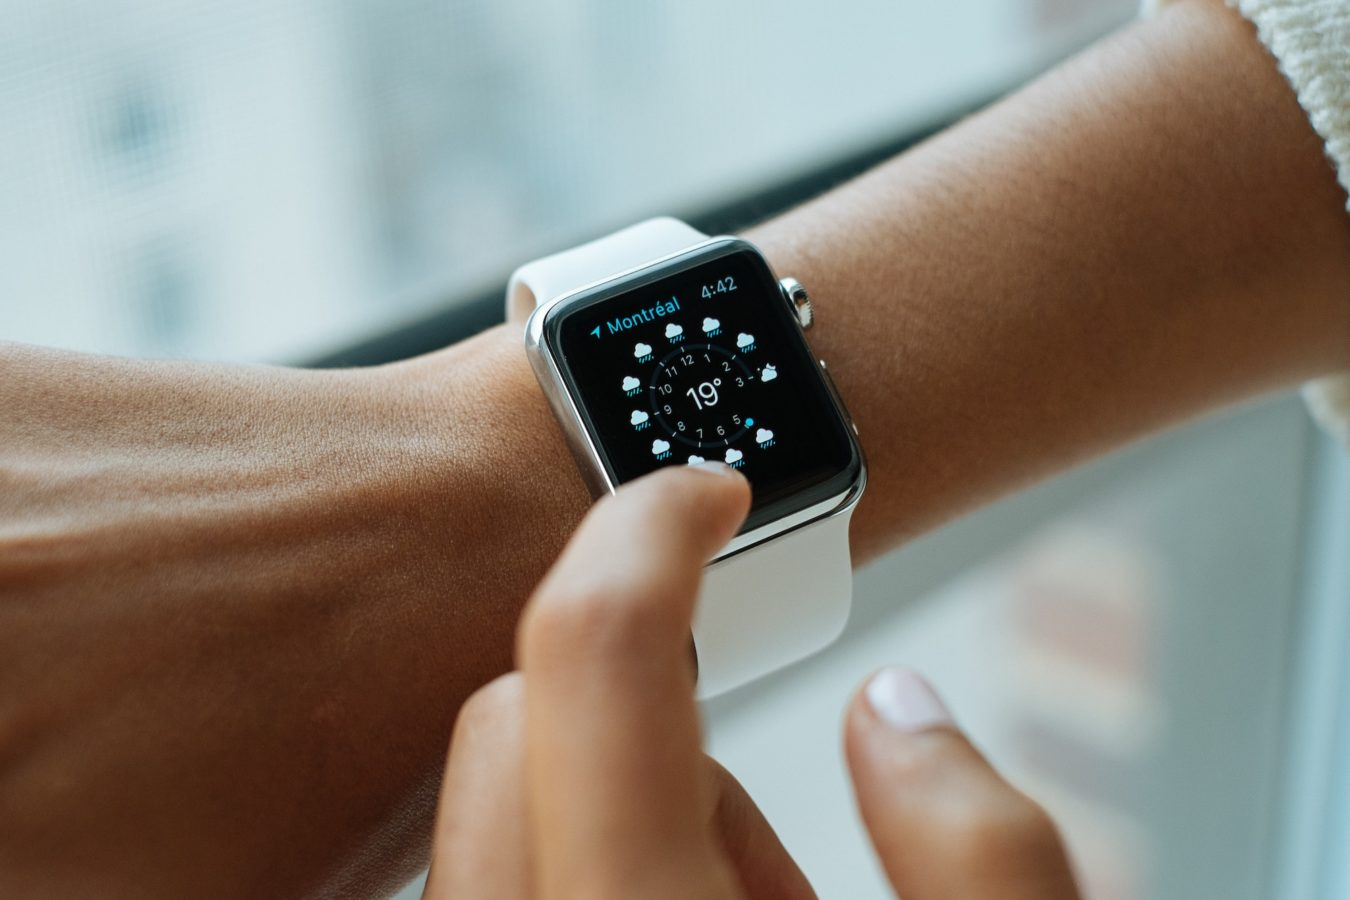 Study finds Apple Watch effective in early detection of Covid-19 symptoms